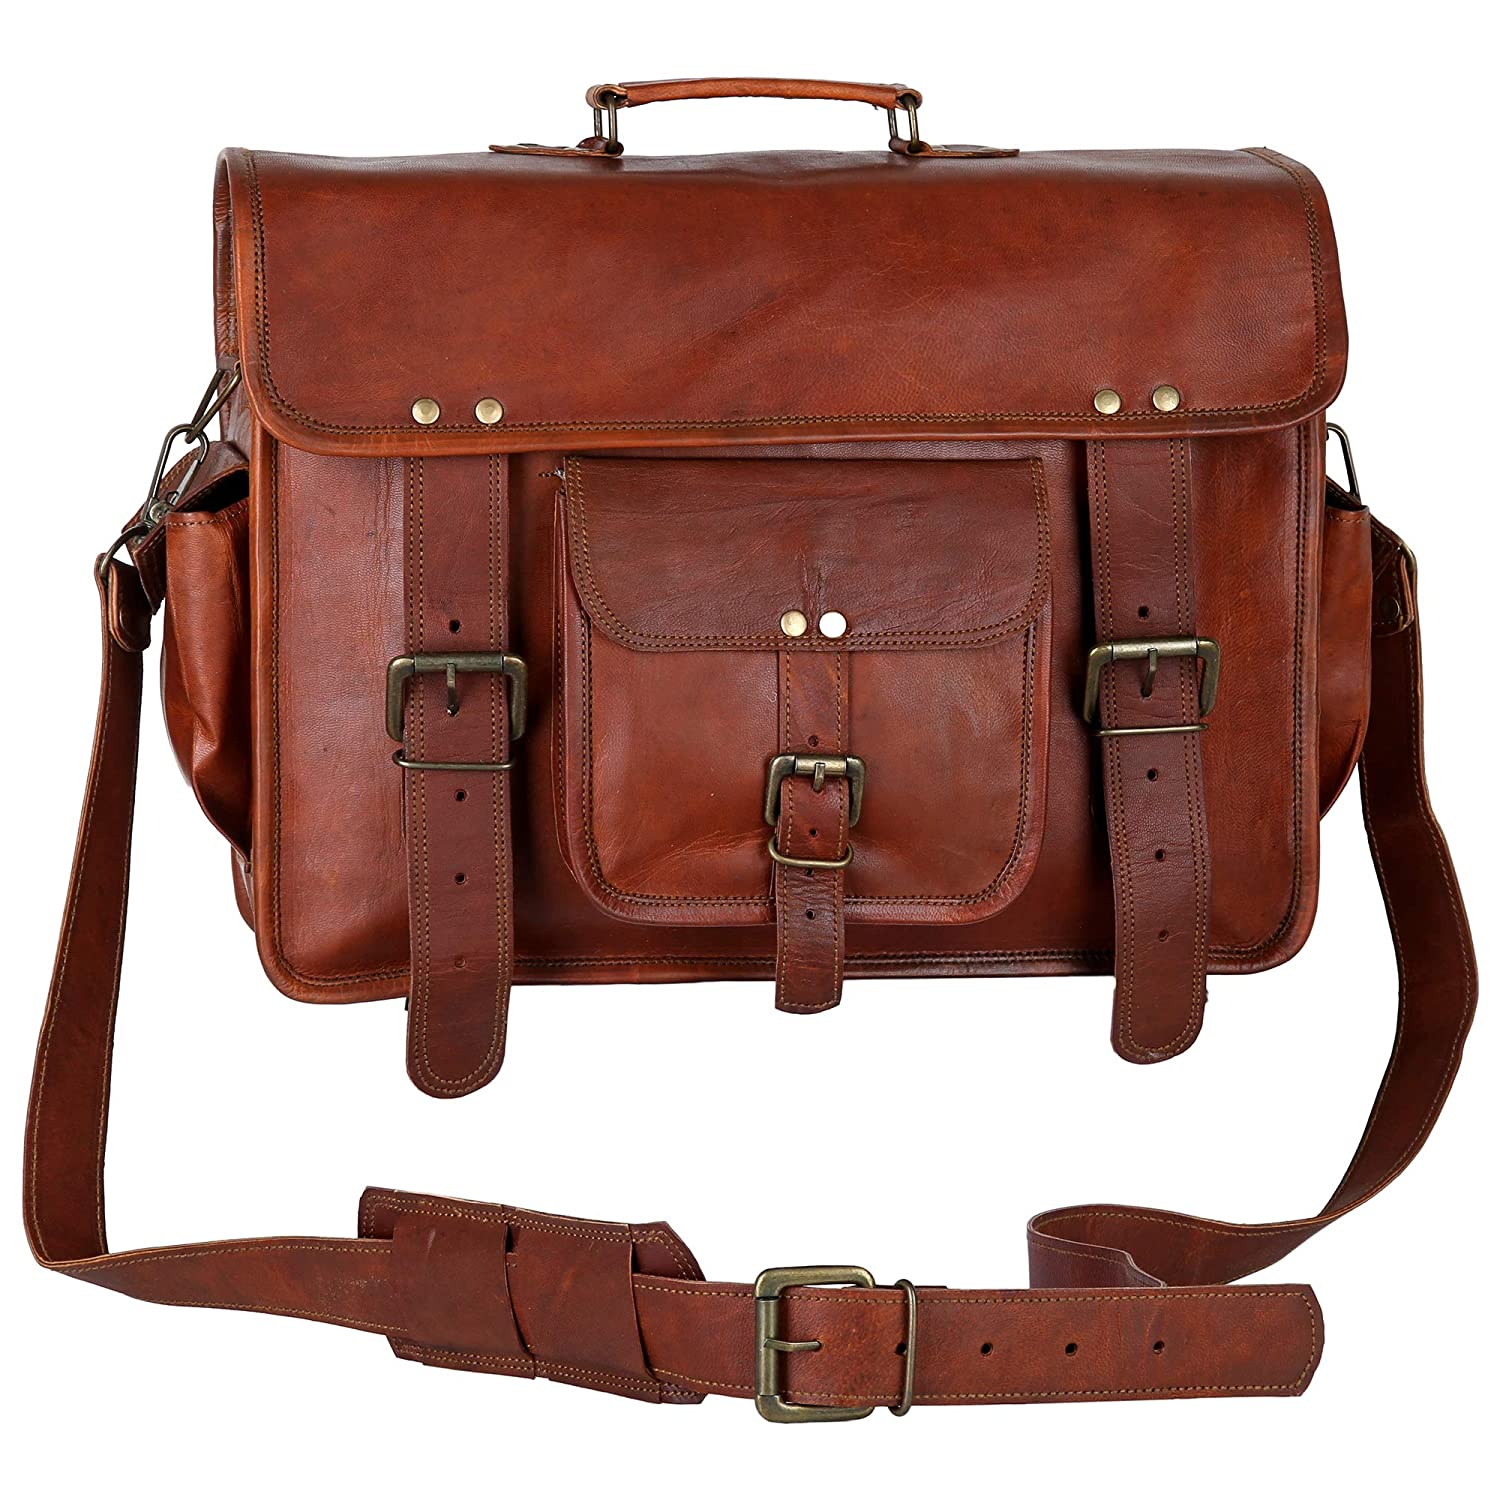 Dark Brown CPLEATHER Finest Quality Leather Messenger Bag for Men and Women